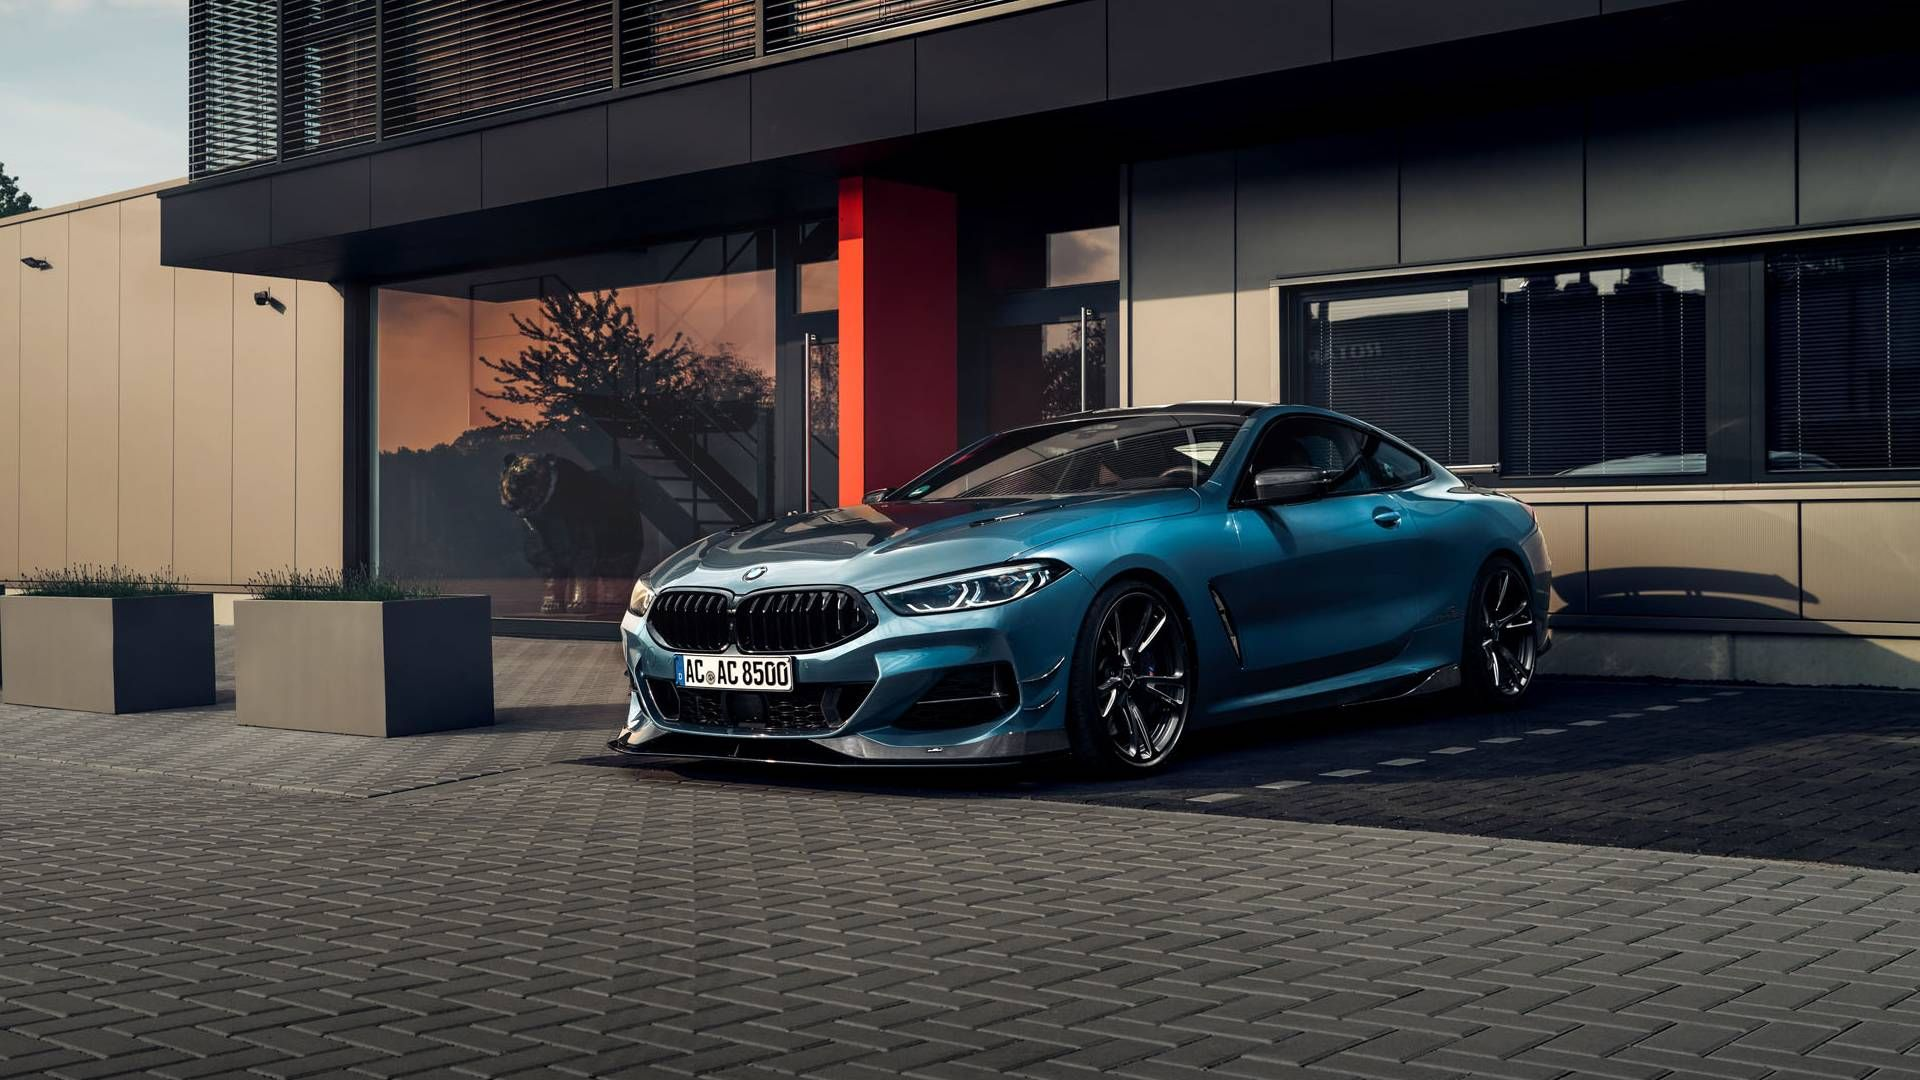 Ac Schnitzer Drops Full Bmw 8 Series Tuning Pack Takes M850i To